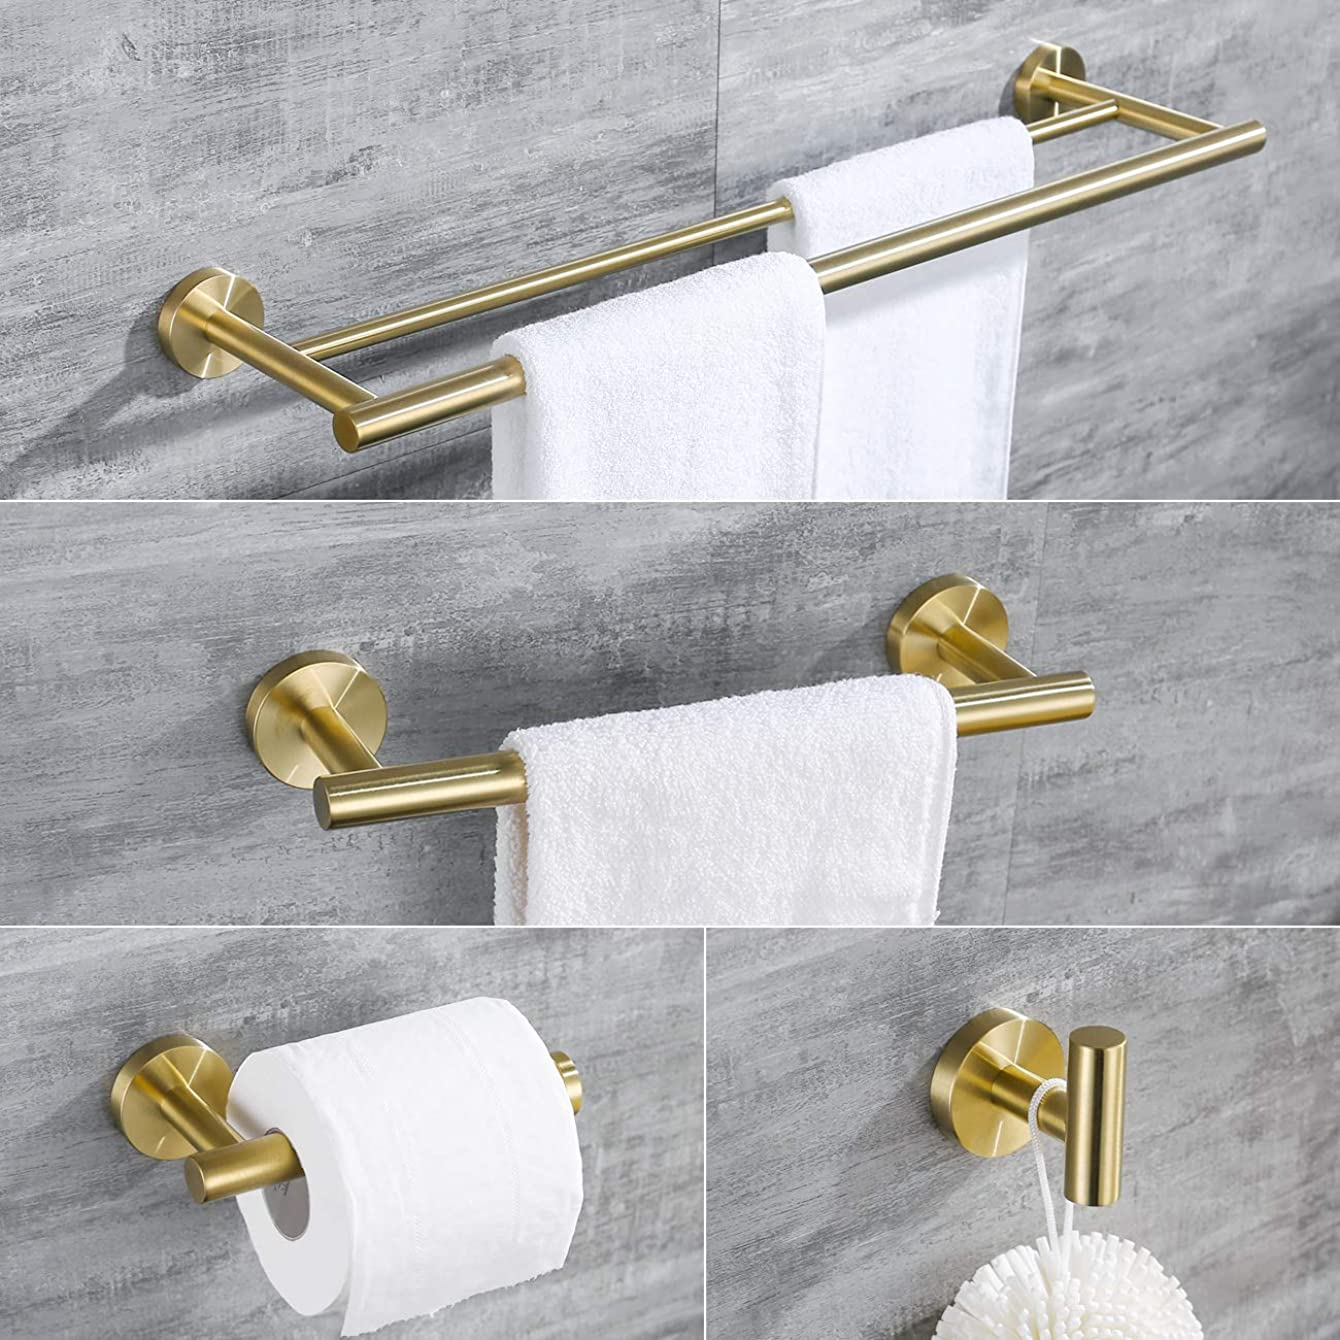 Hoooh 4-Piece Bathroom Accessories Set Stainless Steel Wall Mount Brushed Gold - Includes Double Towel Bar, Hand Towel Rack, Toilet Paper Holder, Robe Hooks, BS100S4-BG kpynsulixsypb57